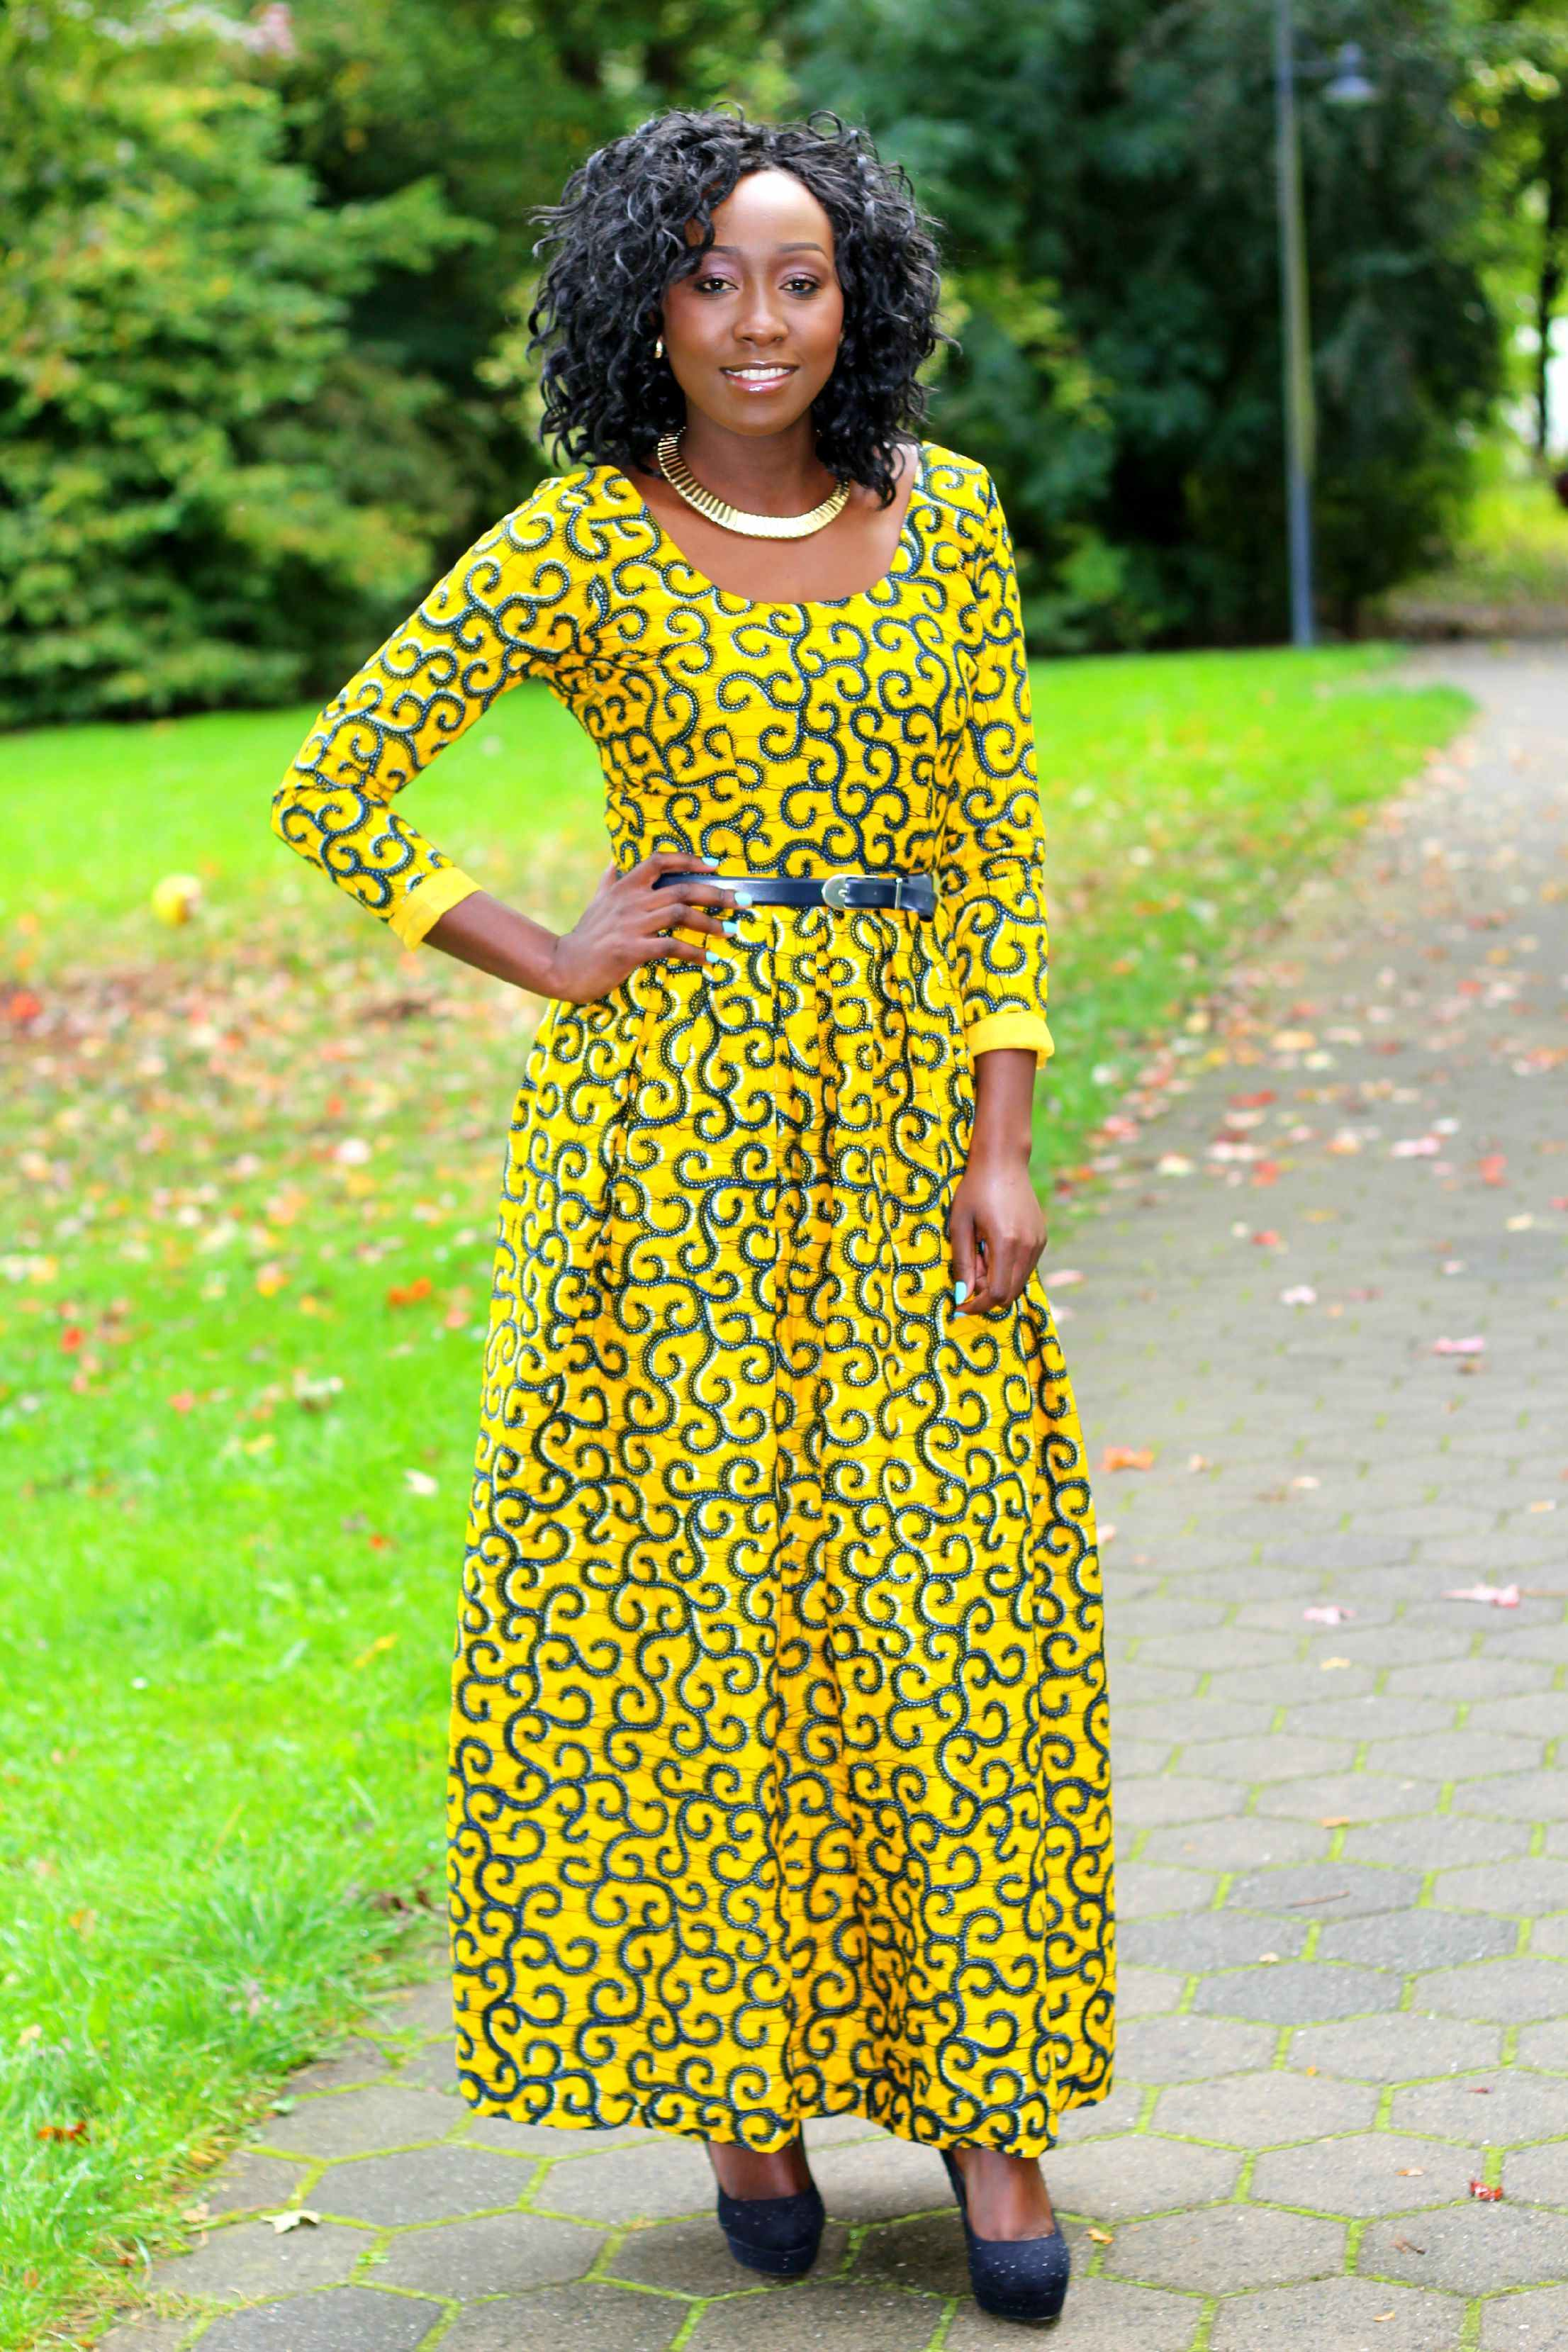 Traditional Clothing In 2017 For African Woman